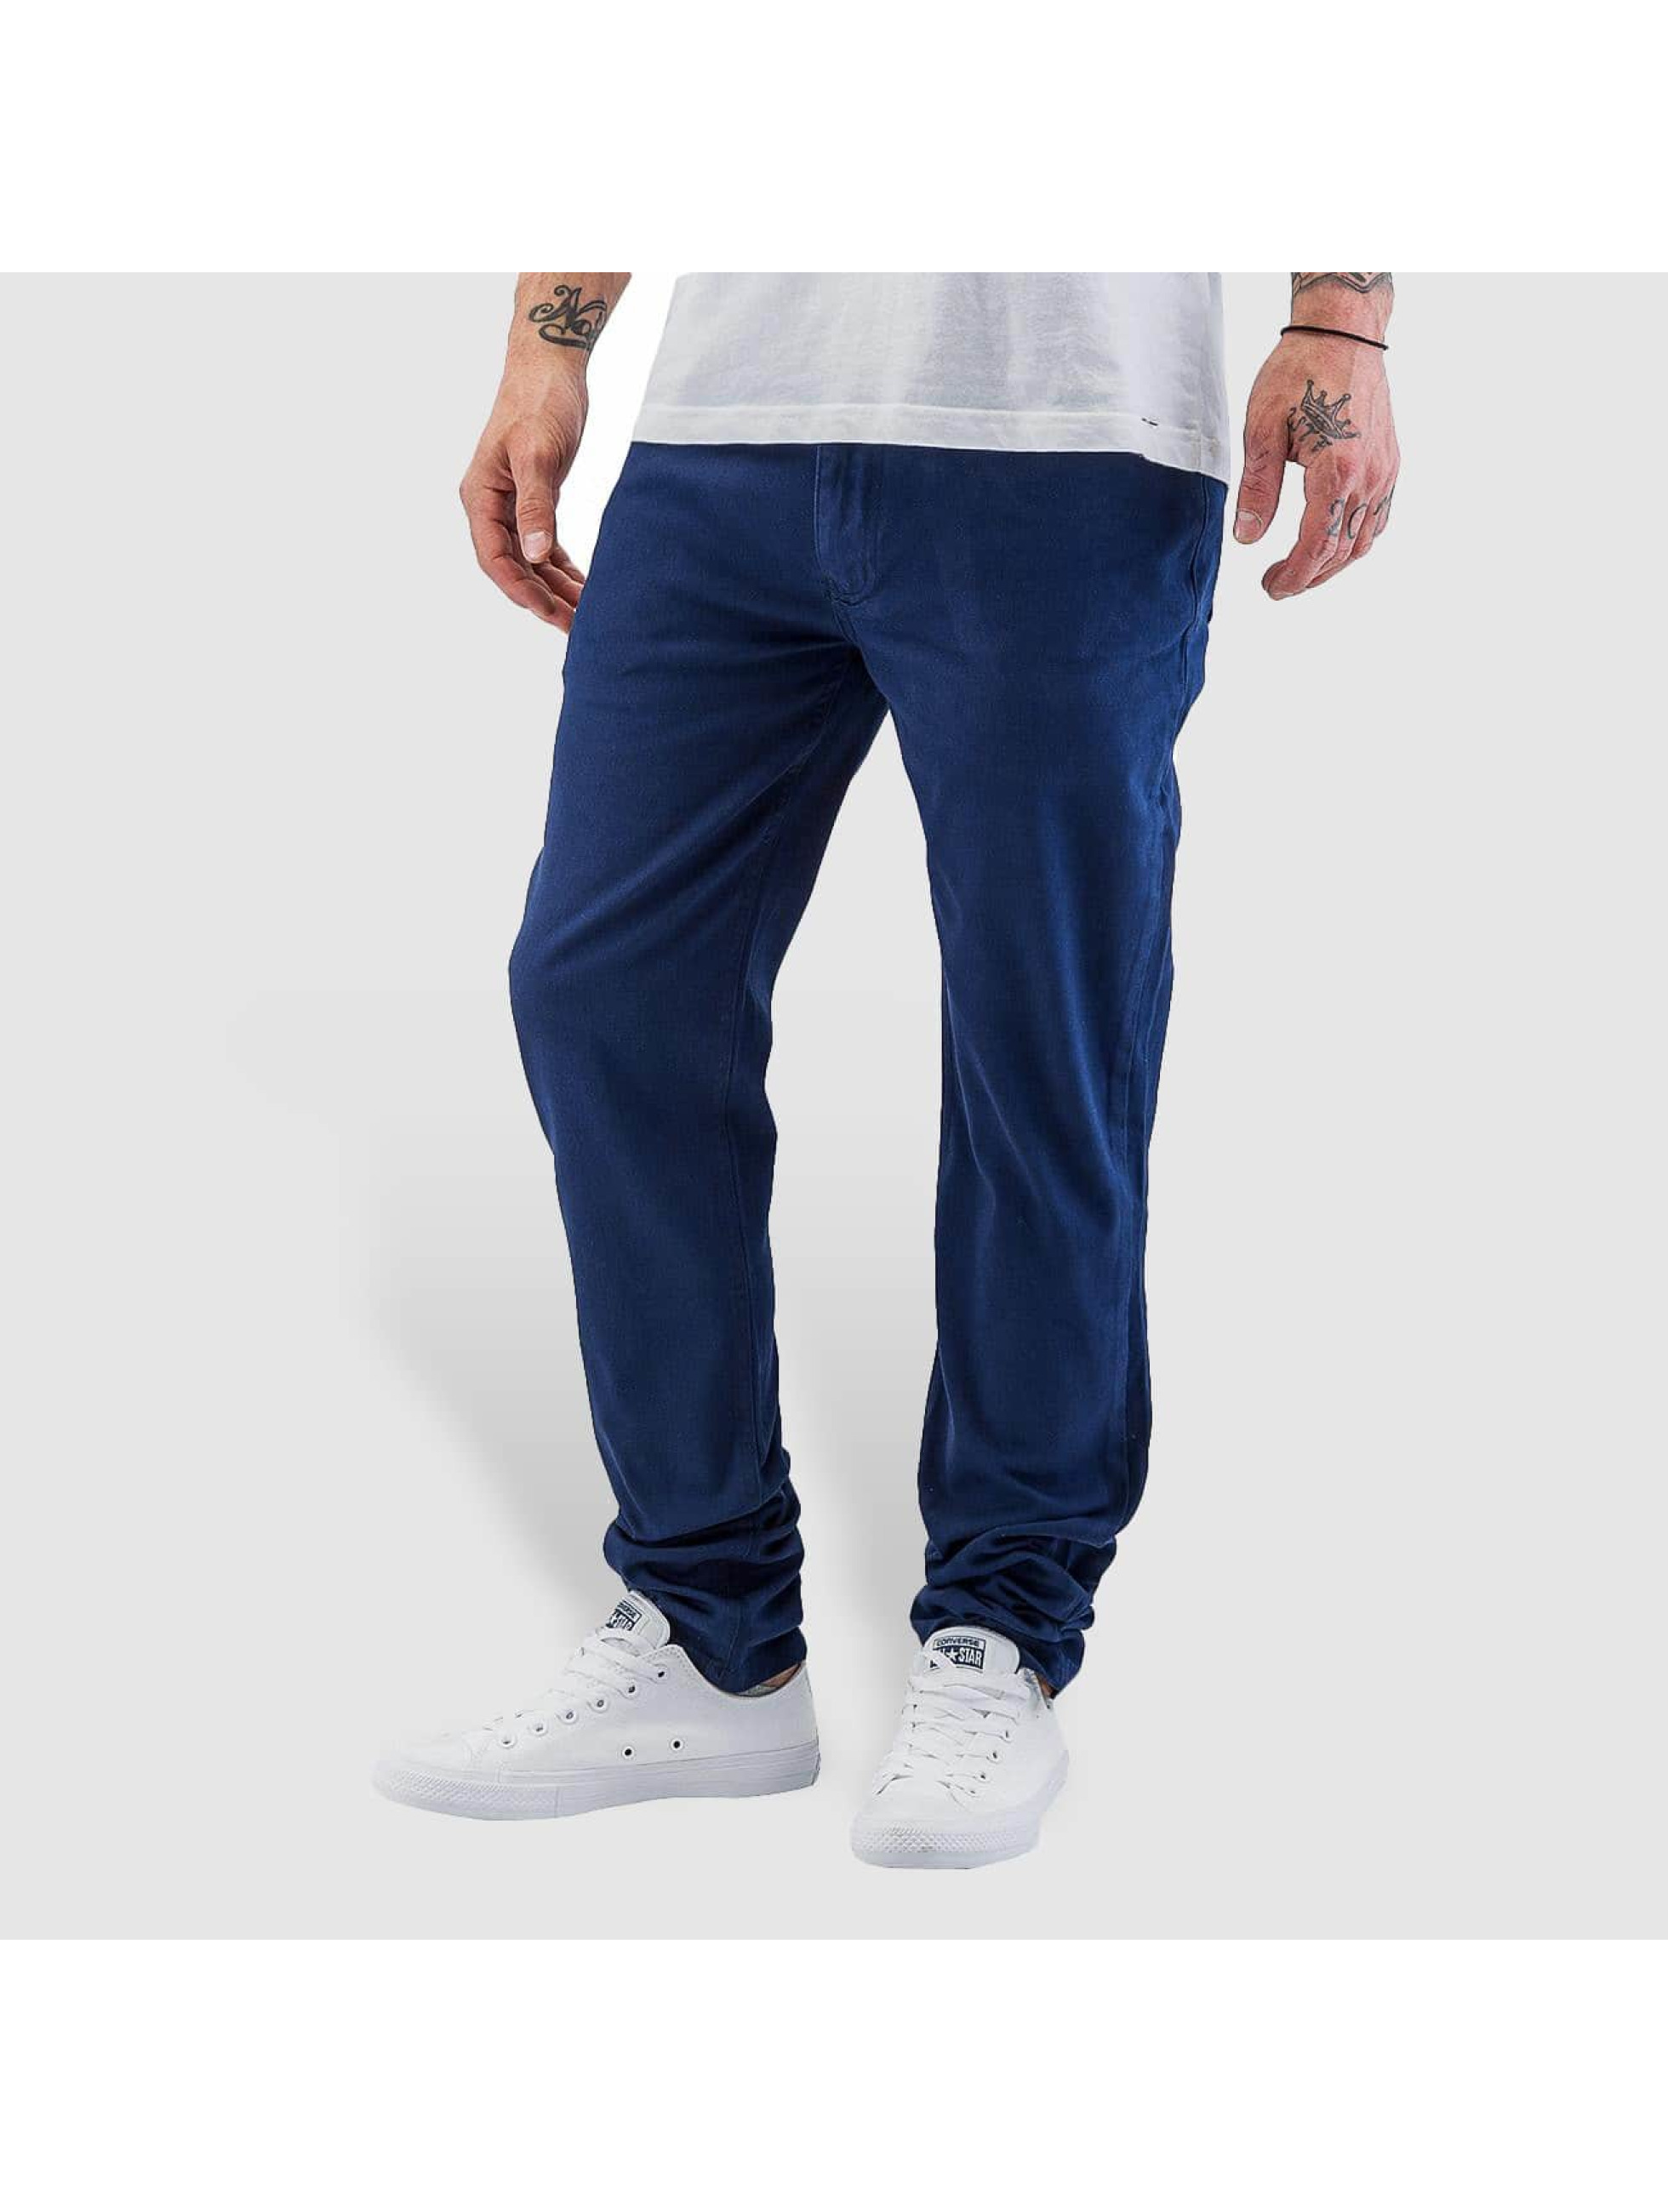 Just Rhyse / Skinny Jeans Cool Skinny  in blue W 32 L 32